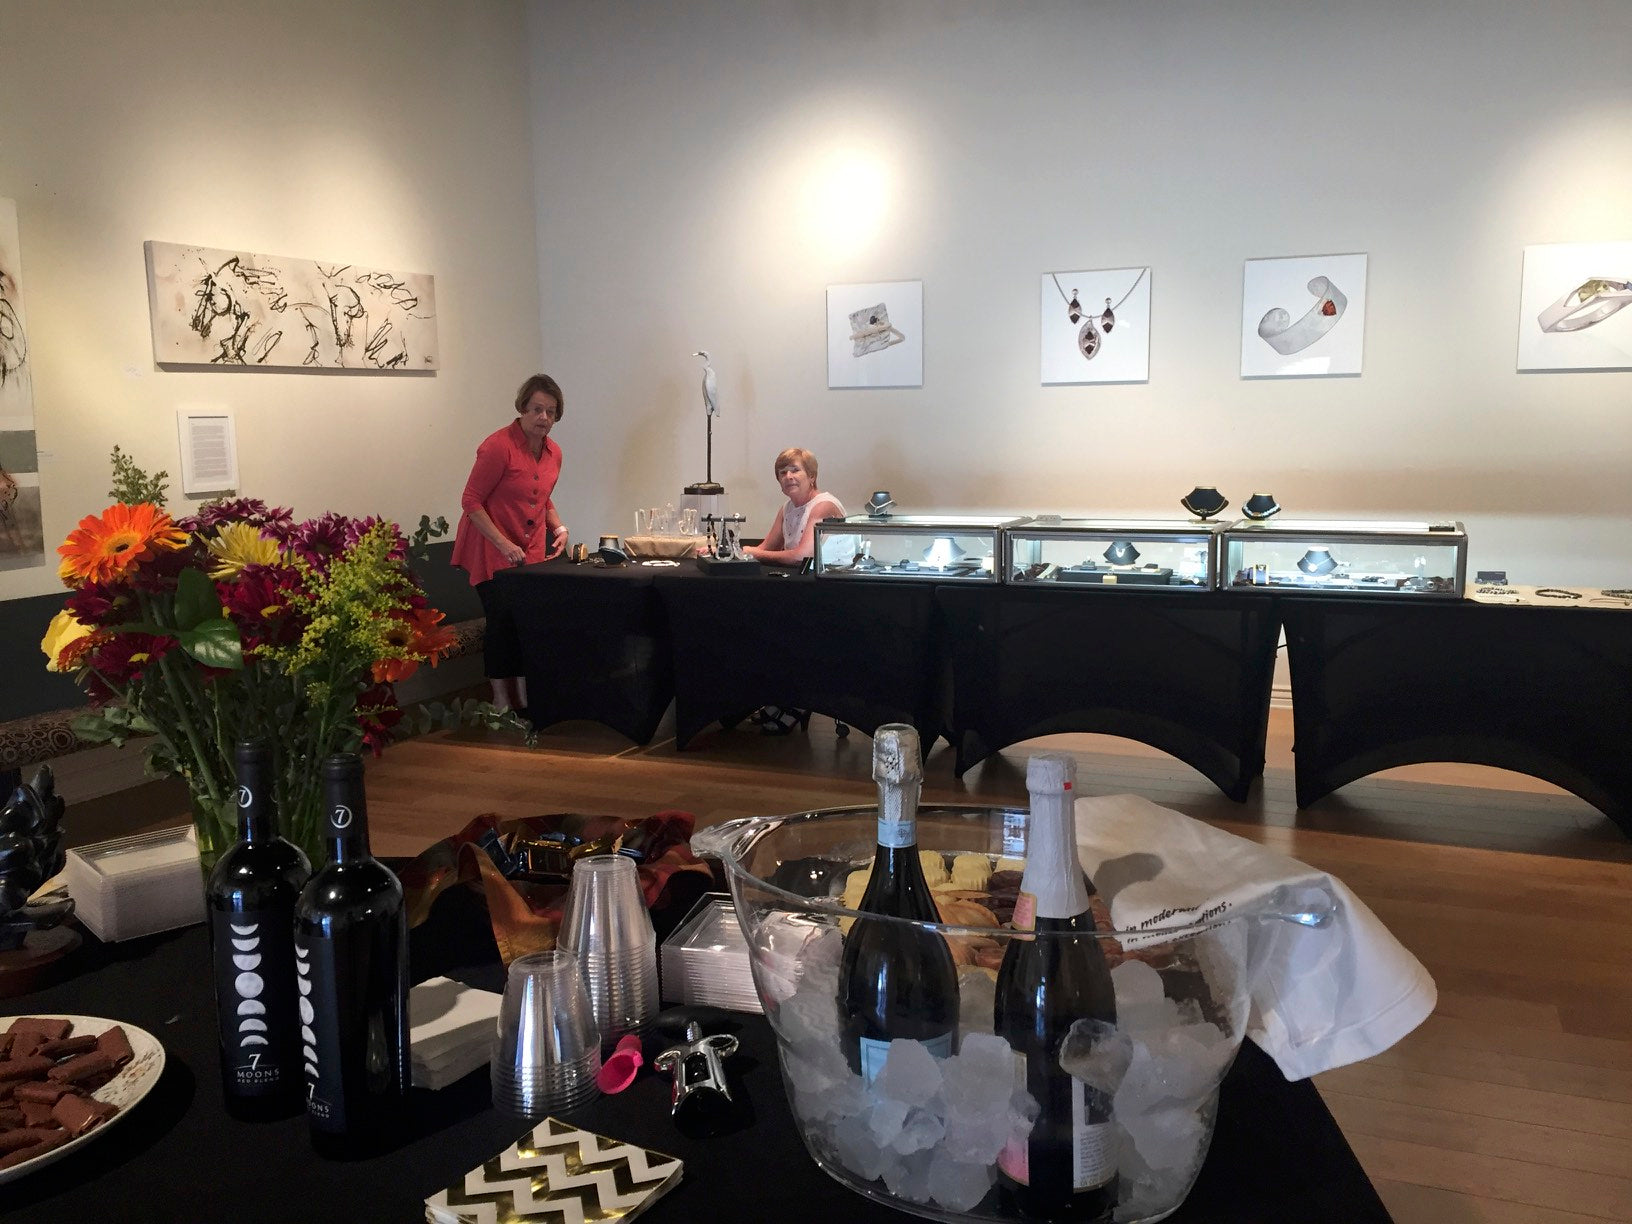 The Art Bar - Featured Event for December in AZFoothills Weekly Holiday News